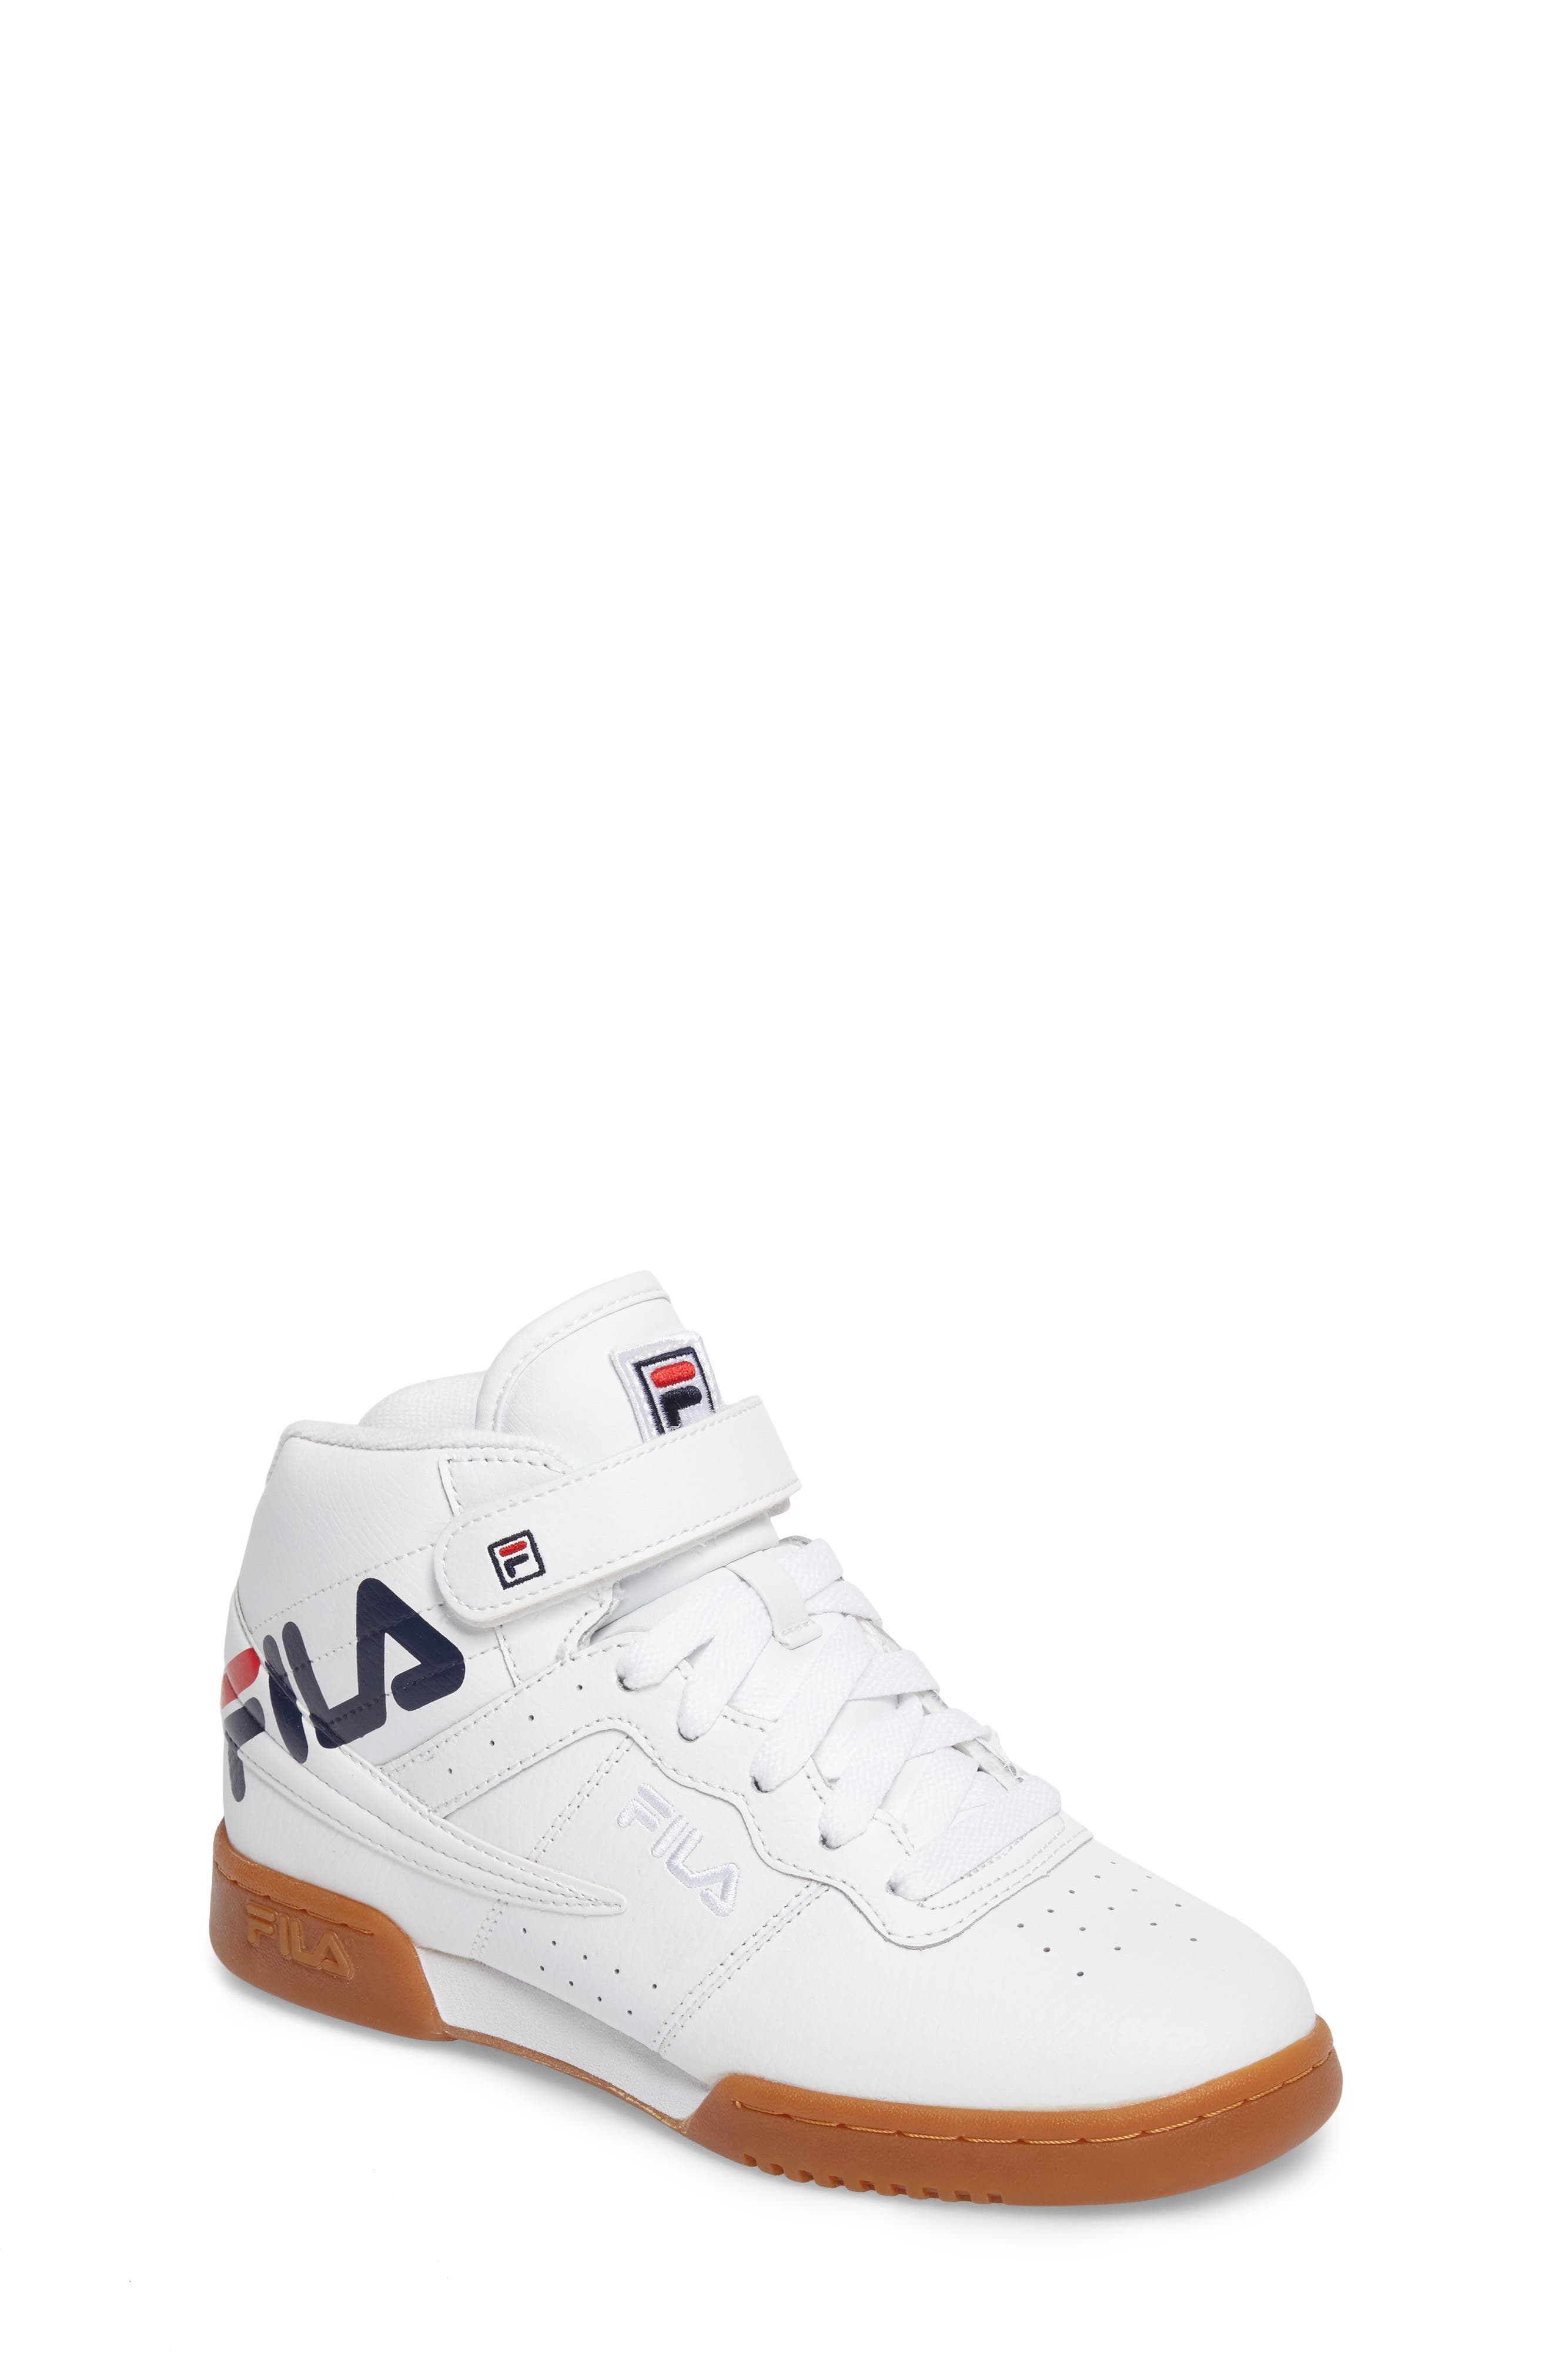 Original Fitness Logo Mid Top Sneaker,                             Main thumbnail 1, color,                             White/ Navy/ Red